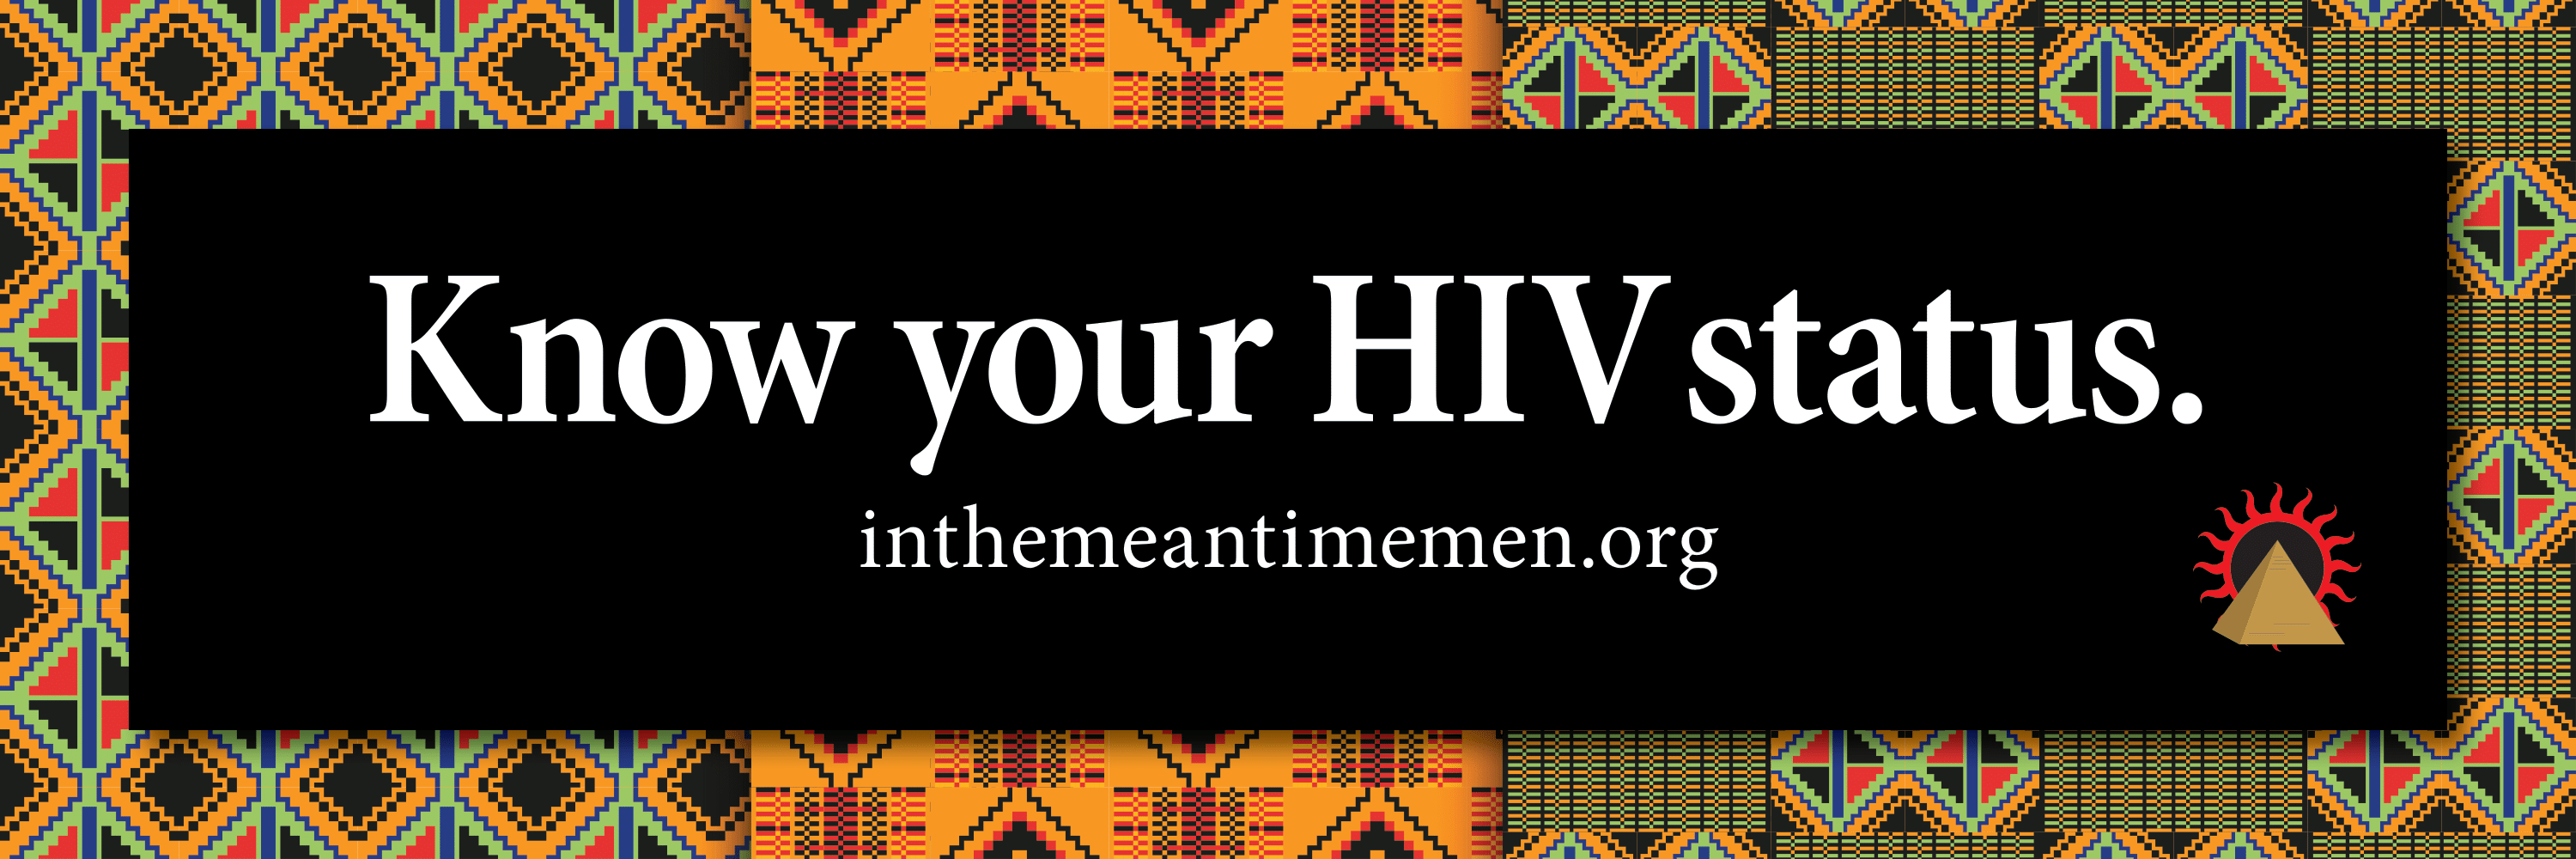 know your hiv status billboard